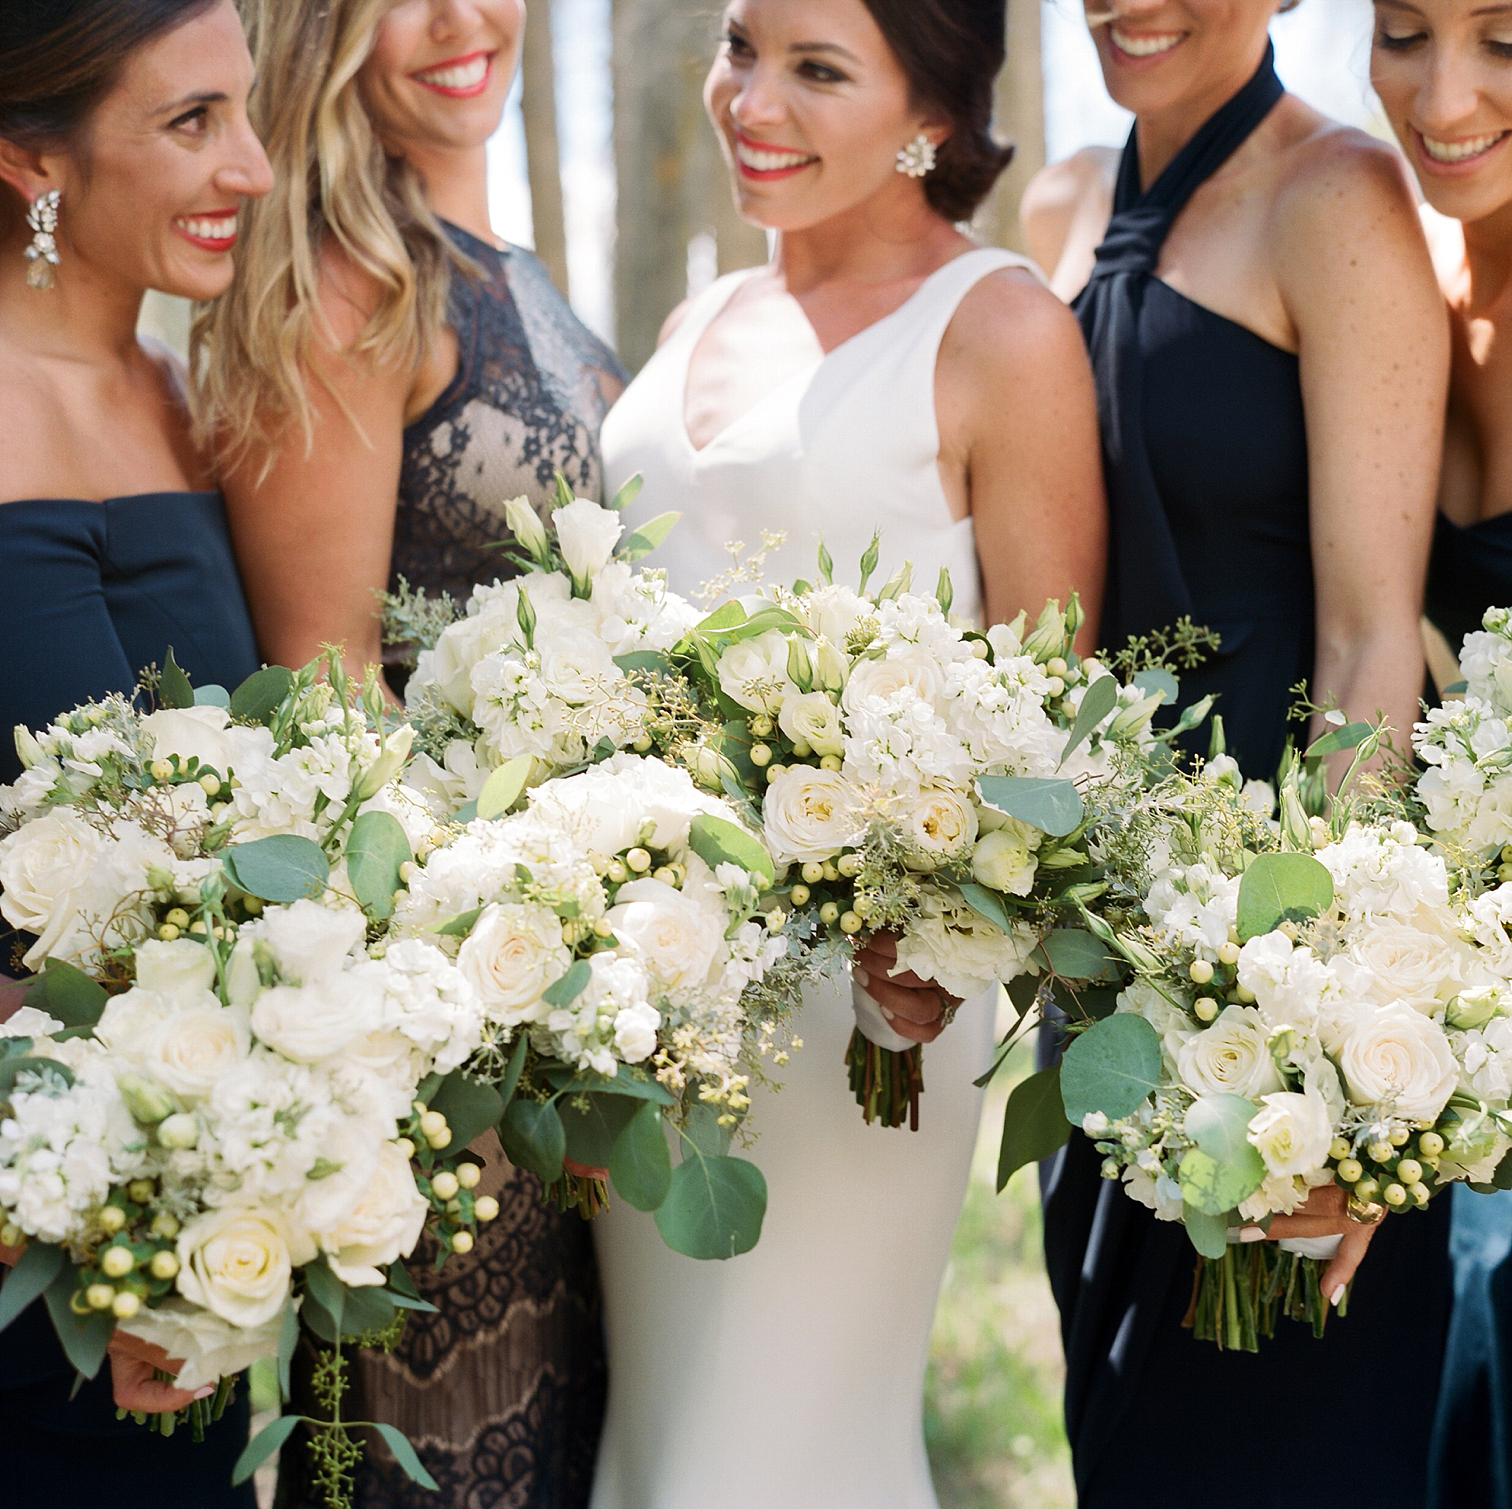 Bride with Bridesmaids, White Wedding Bouquets, Vail Colorado Wedding, Colorado Wedding Photographer, Film Photographer, Mountain Wedding, Colorado Destination Wedding Photographers, Best Photographers In Colorado, Film Photography, Denver Wedding Photographers